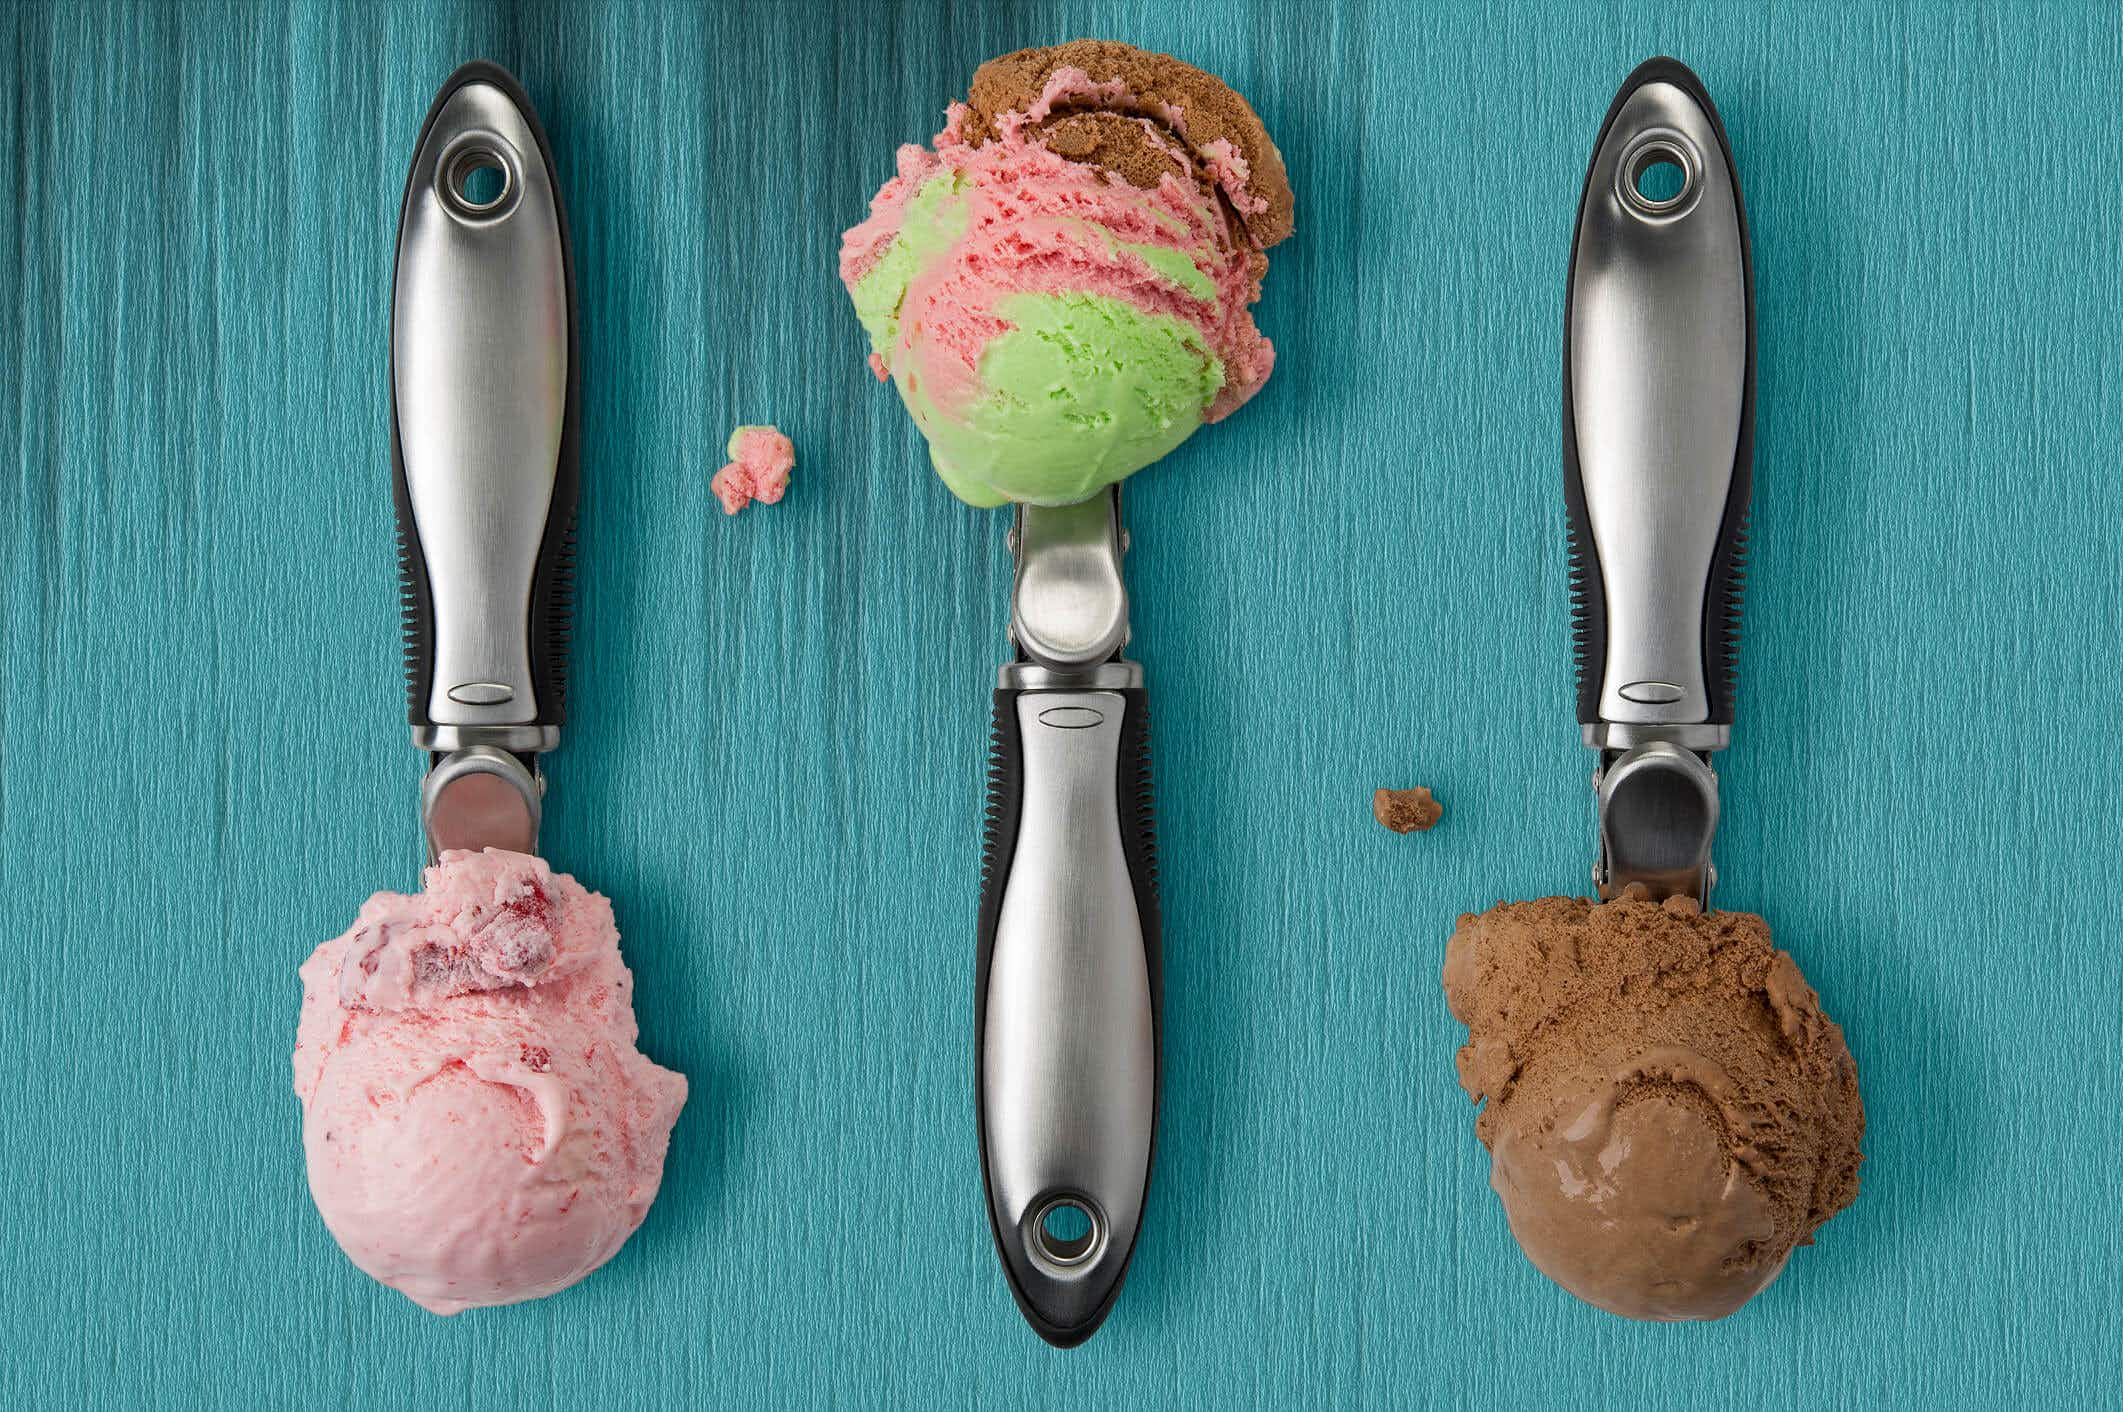 Get 'buzzed' about Tipsy Scoop, NYC's first boozy ice cream parlour